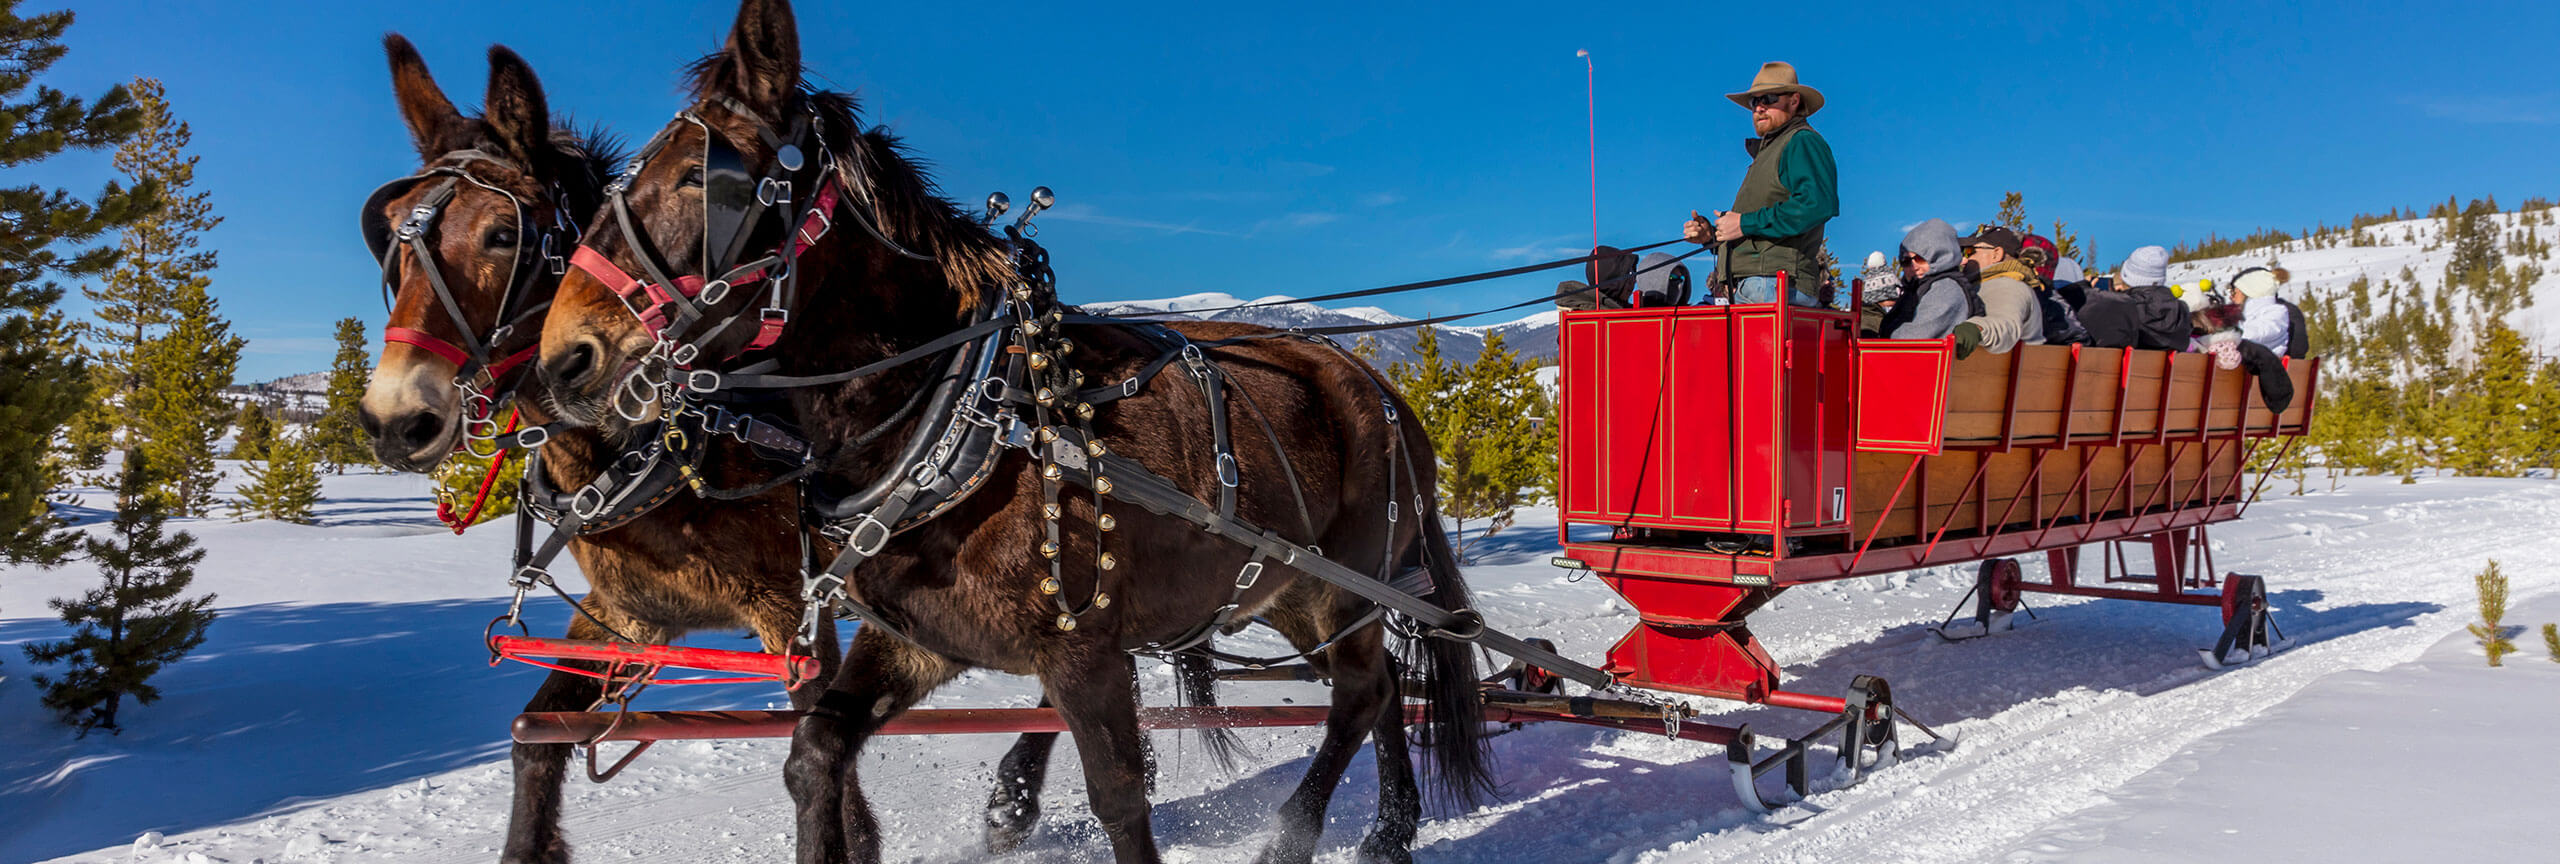 Two mules pulling red sleigh with people in it on snow